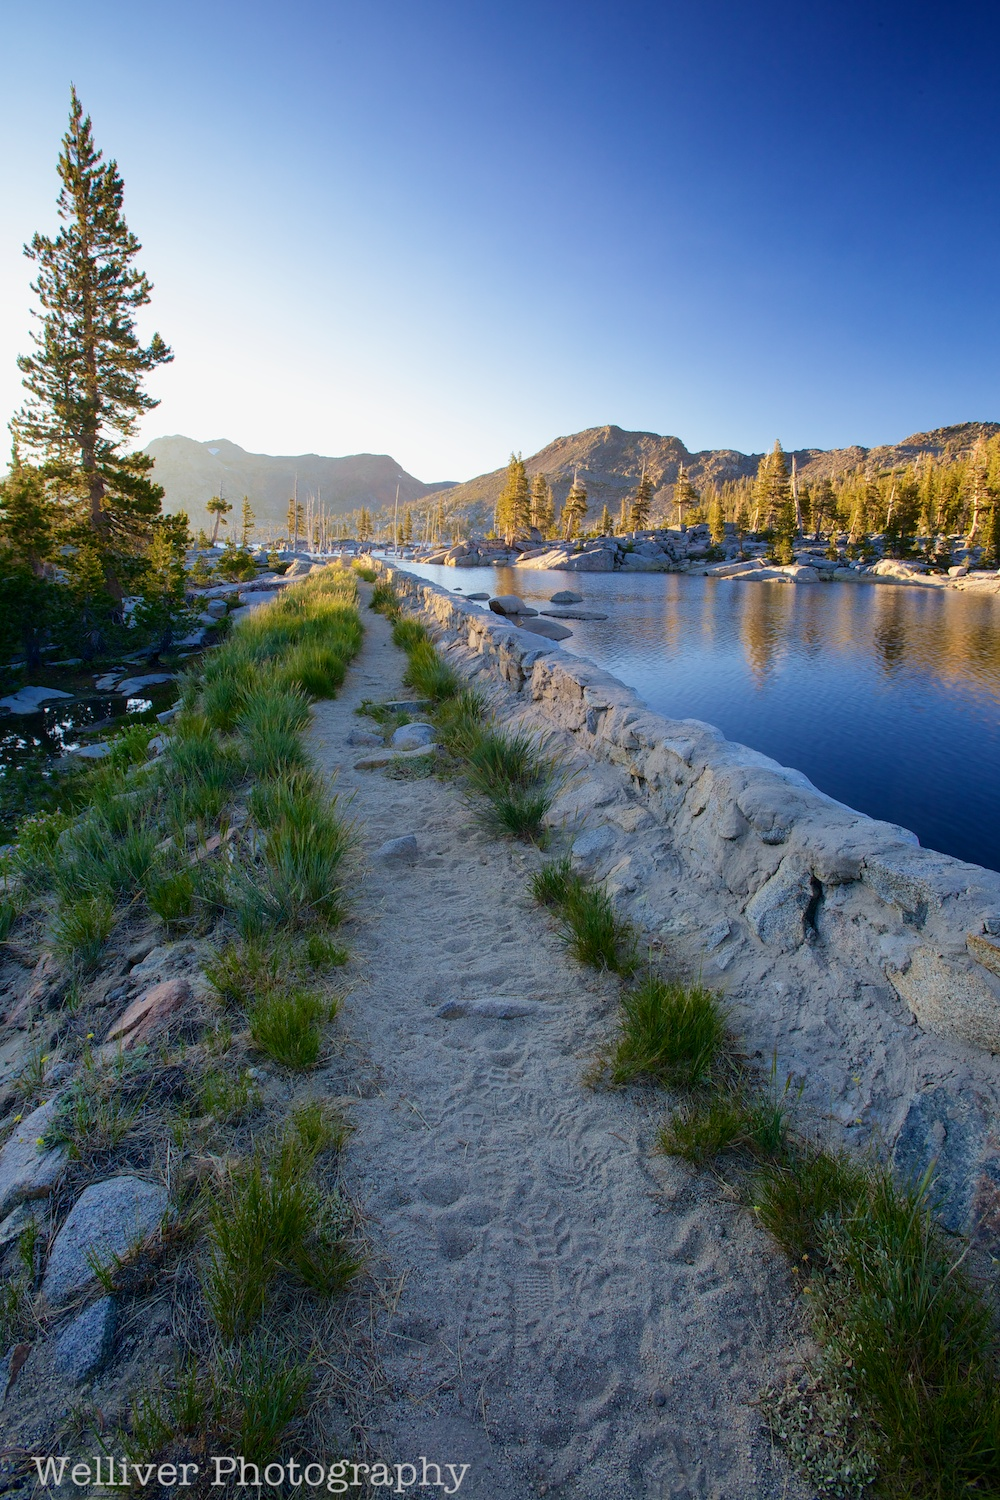 Desolation Wilderness: Trail along Lake Aloha by Beth.